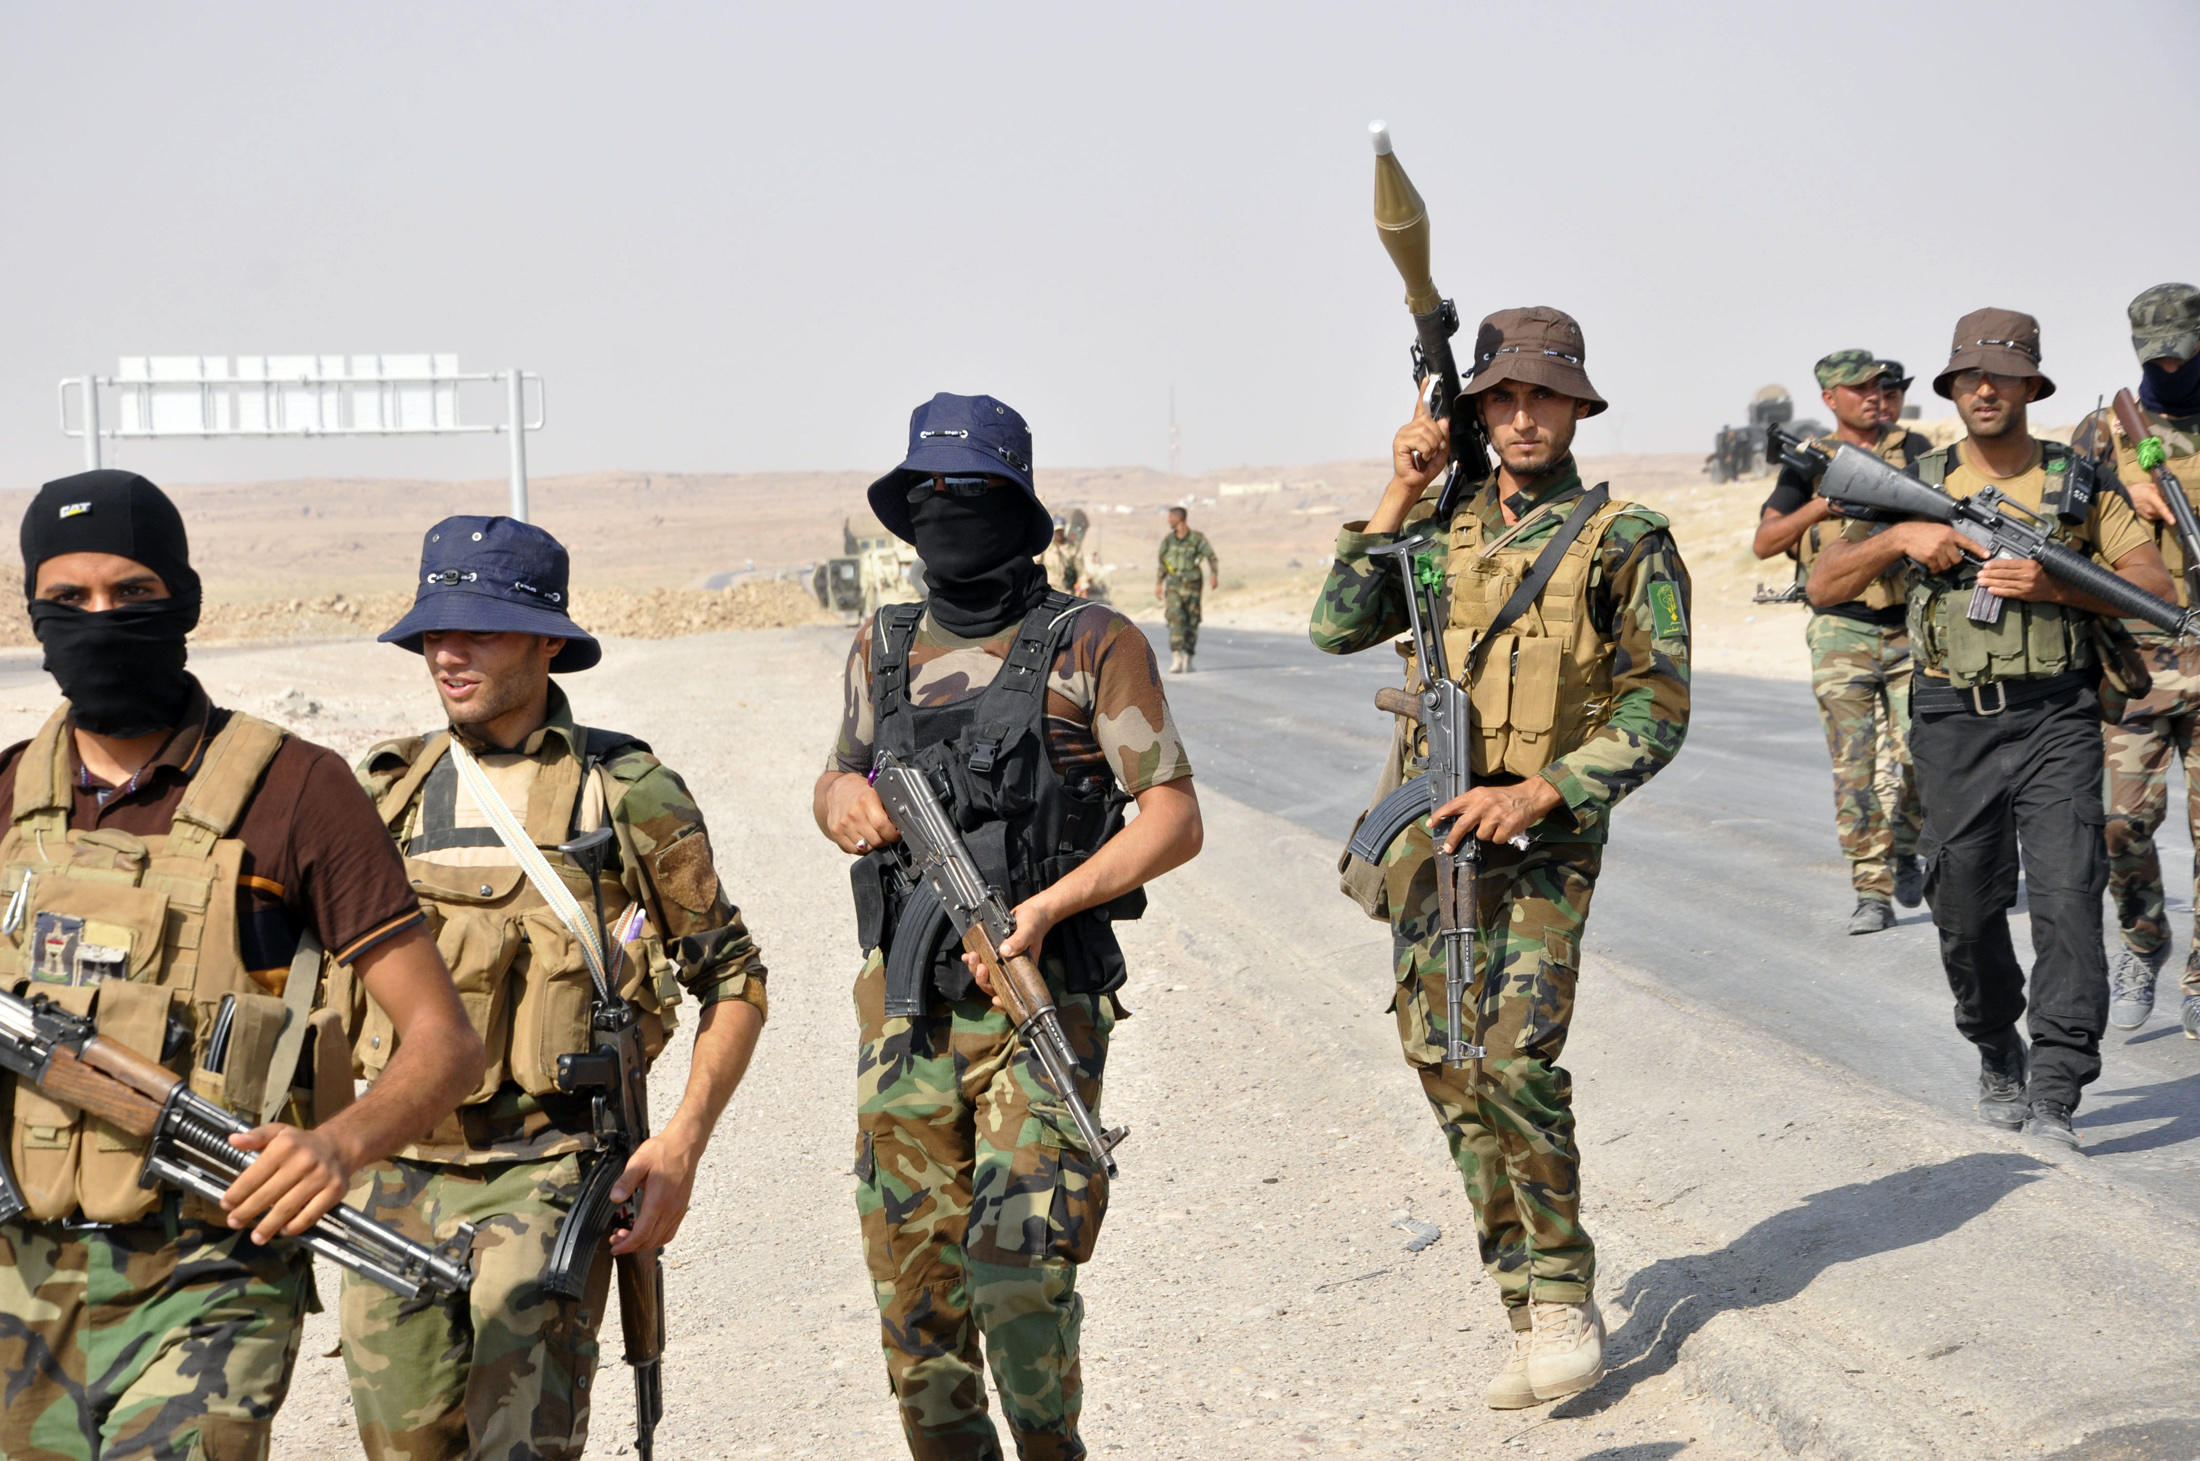 Some of the Iraqi security forces who helped free the town of Amerli over the weekend with help from U.S. air strikes